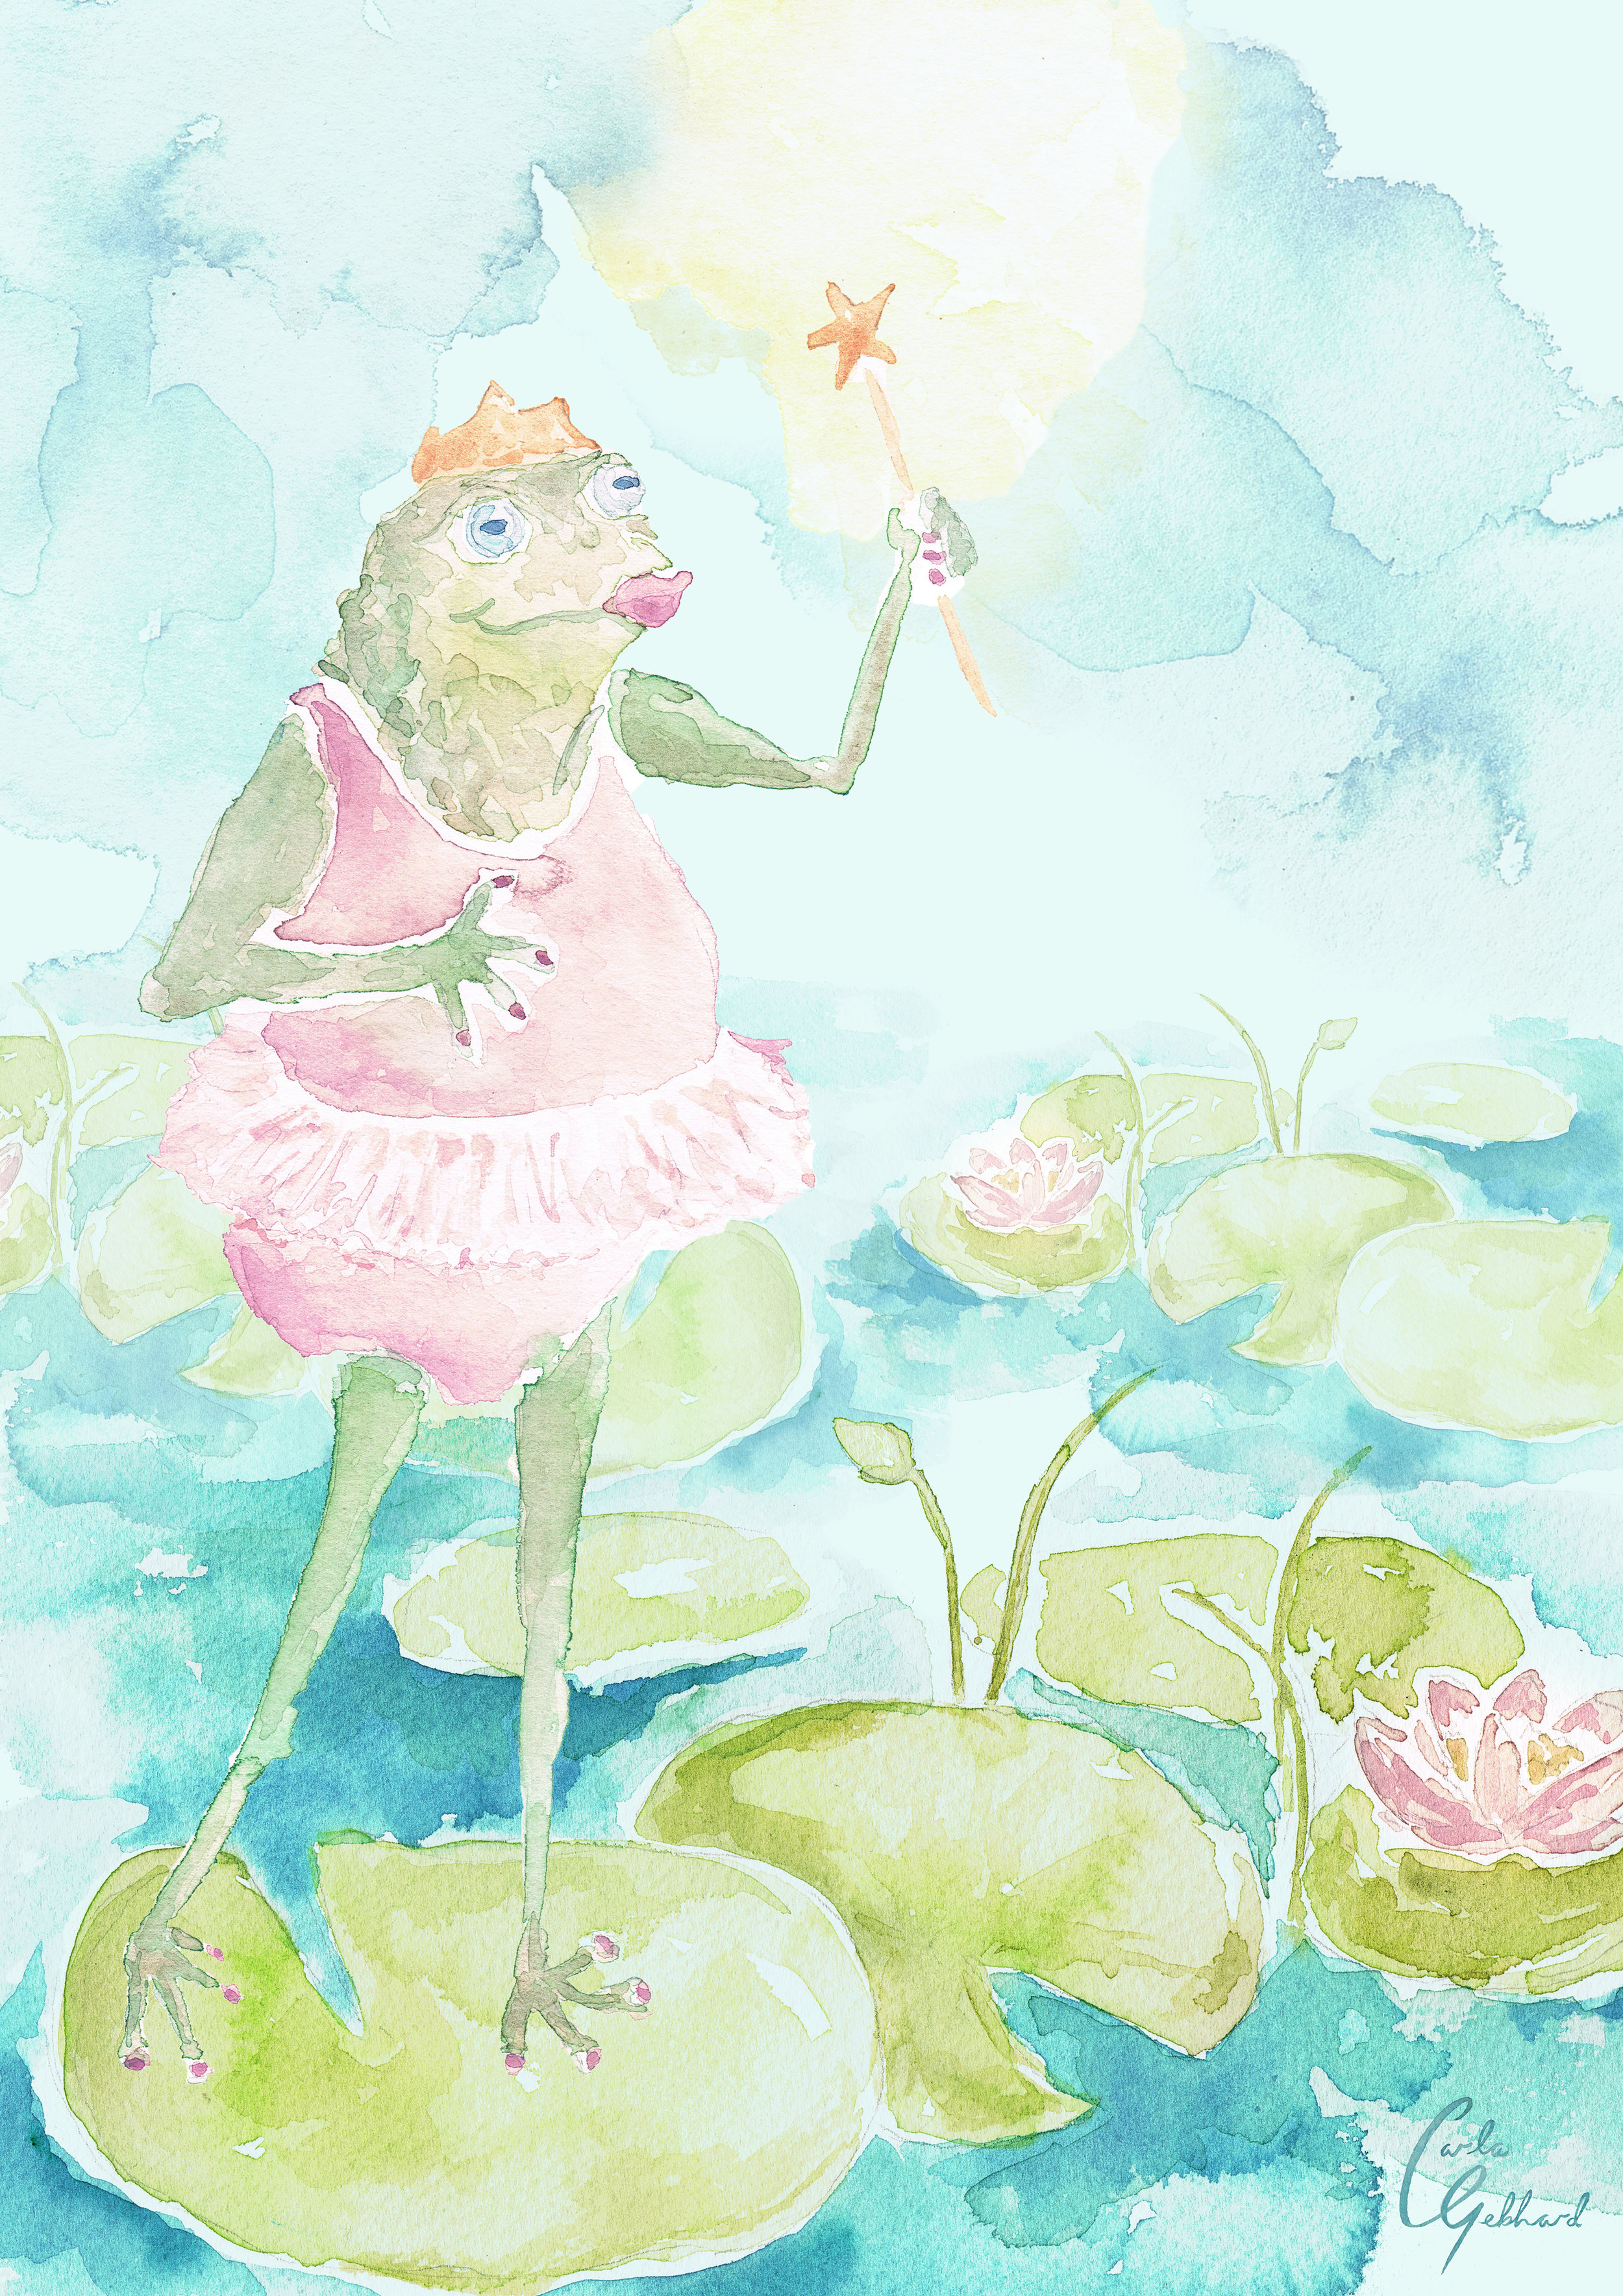 A magical Toad